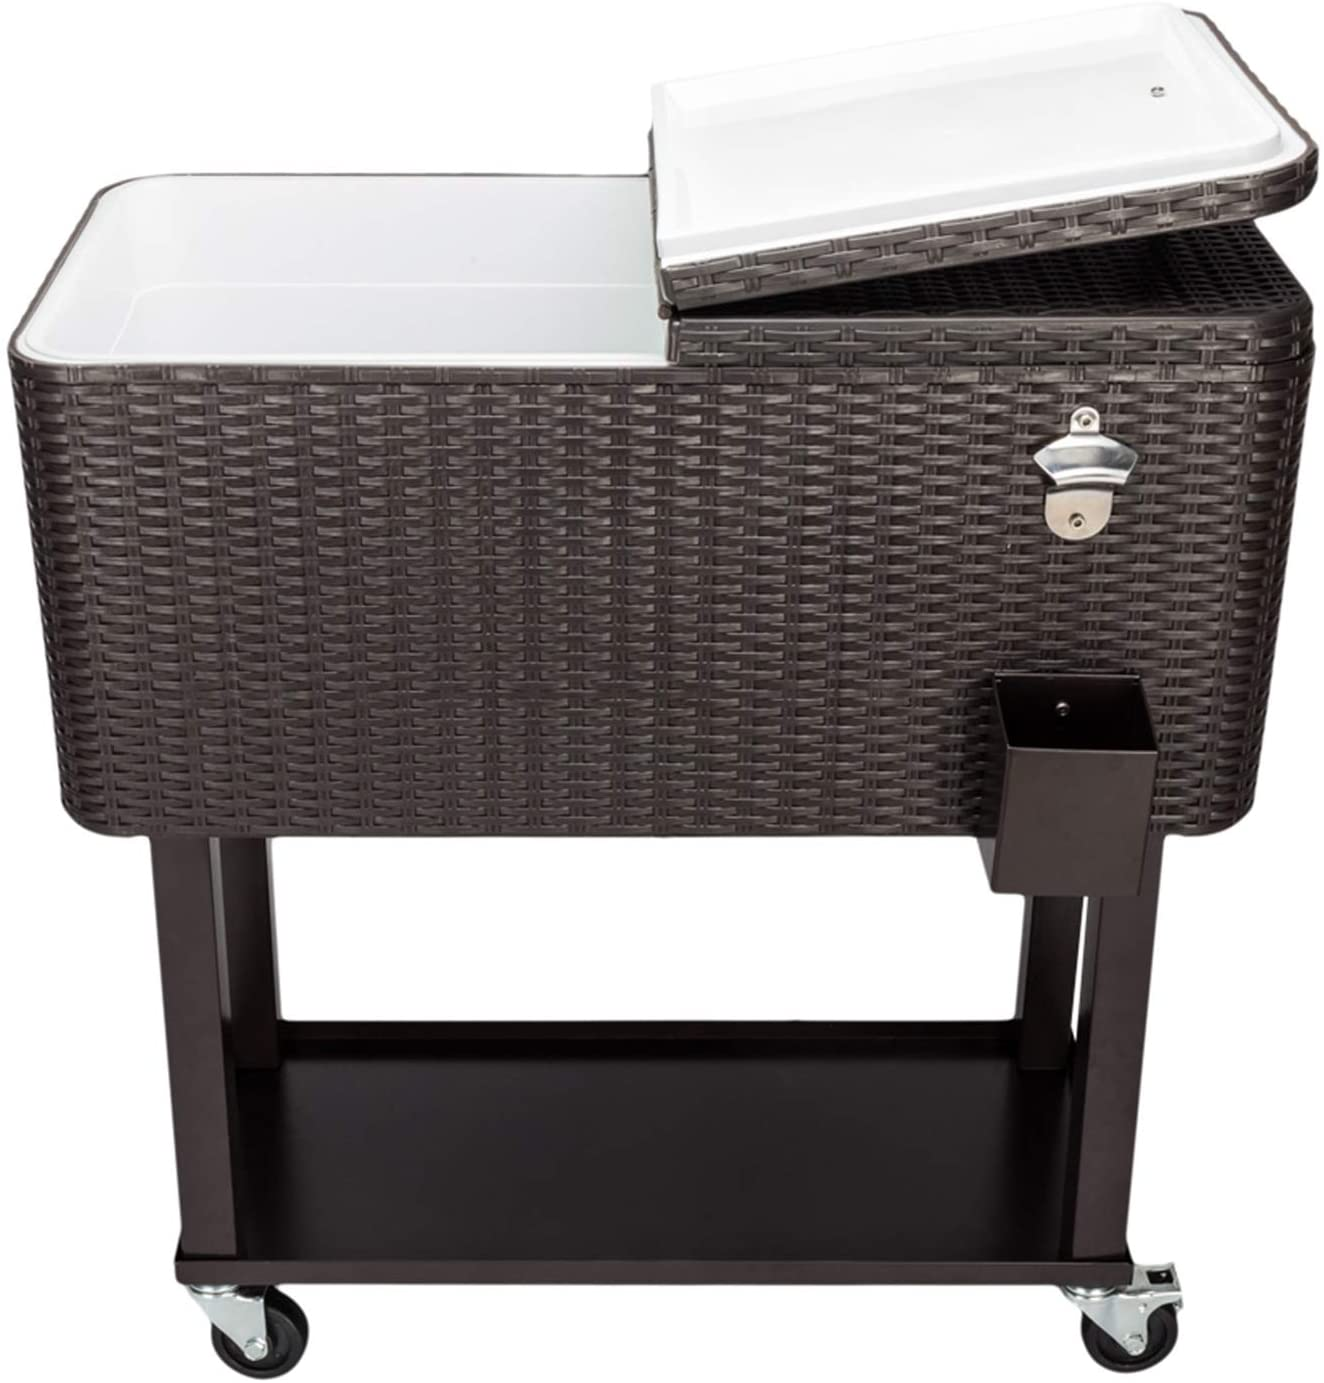 Outdoor Patio Rolling Cooler Cart/80QT Rattan Cooler with Square Legs & Shelf/Bar Drink Cooler Cart Ice Chest Cart Beverage Pool Tub Trolley/Brown